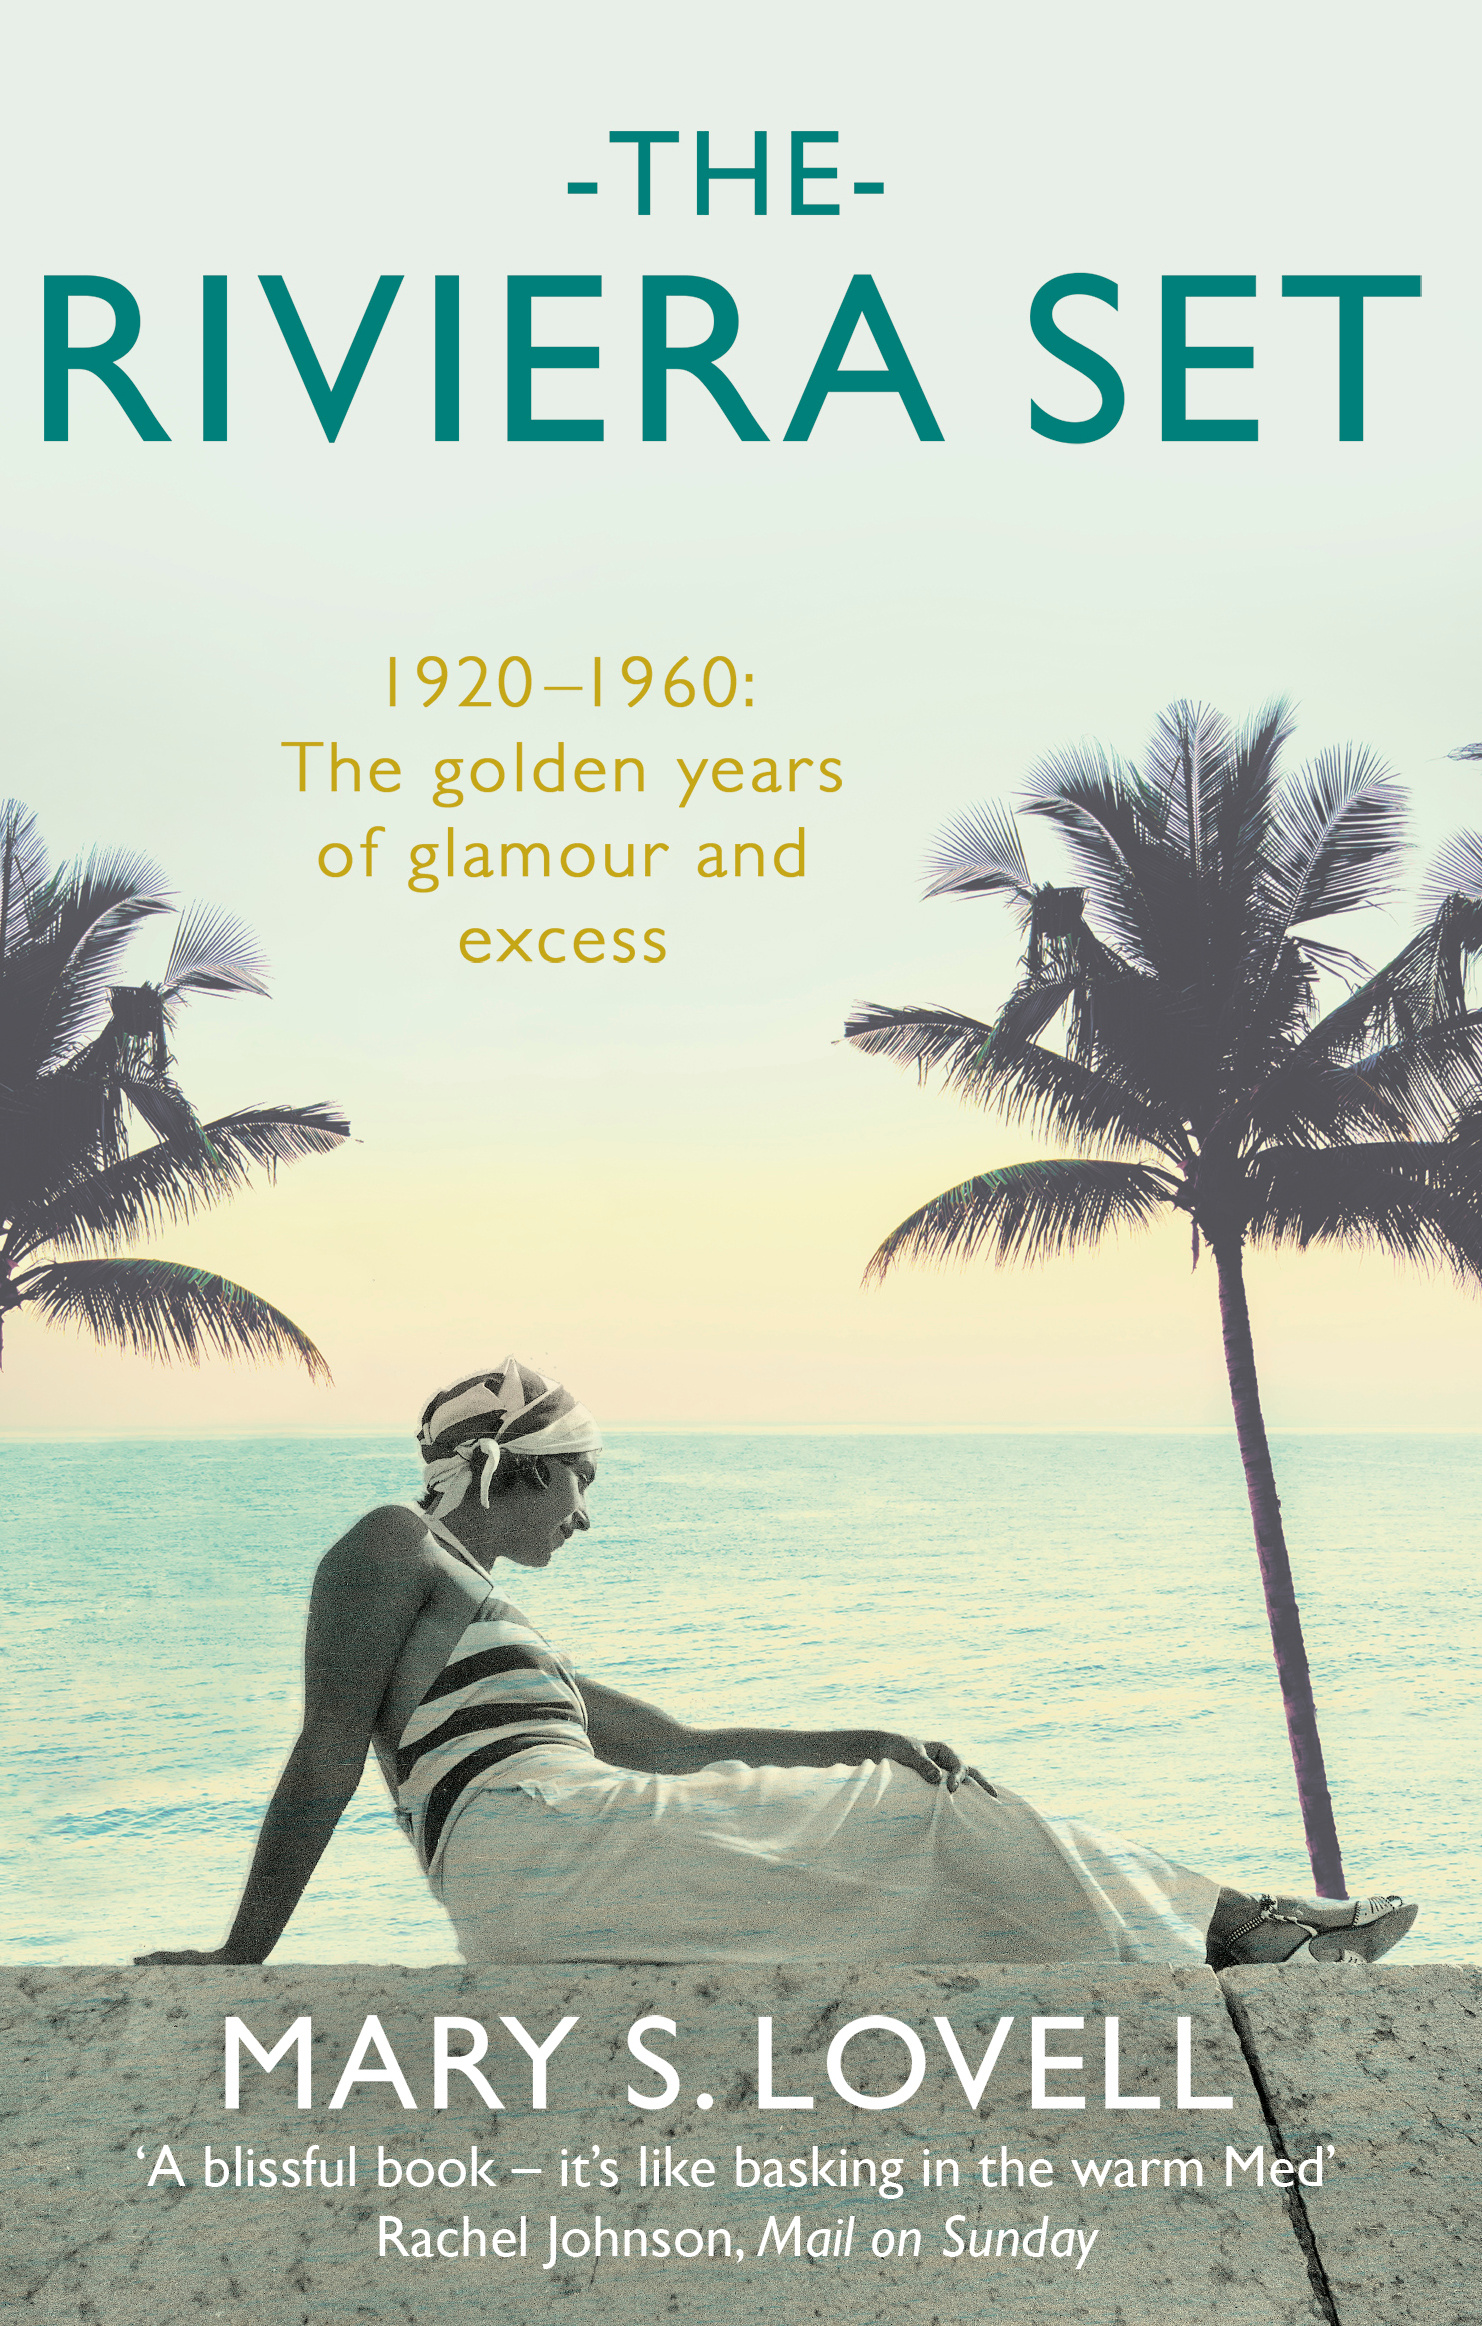 The Riviera Set by Mary S. Lovell, ISBN: 9780349139890